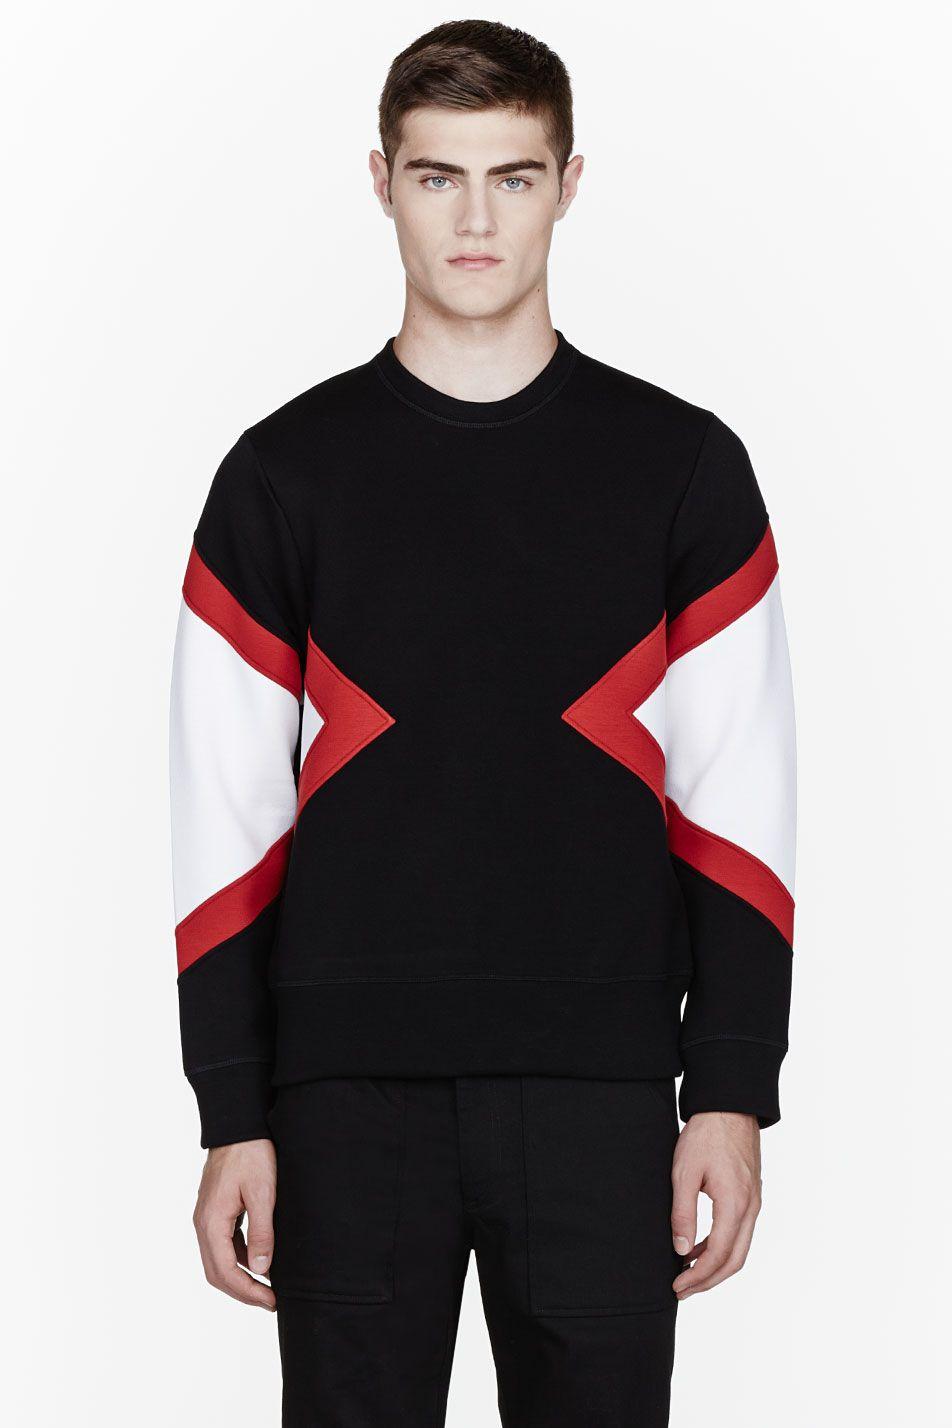 NEIL BARRETT //  Black colorblocked sweatshirt  32368M055005  Long sleeve boxy sweatshirt colorblocked in black, red, and white. Ribbed crewneck collar, cuffs, and hem. Tonal stitching. 95% viscose, 5% elastane. Hand wash. Made in Portugal.  $480 CAD